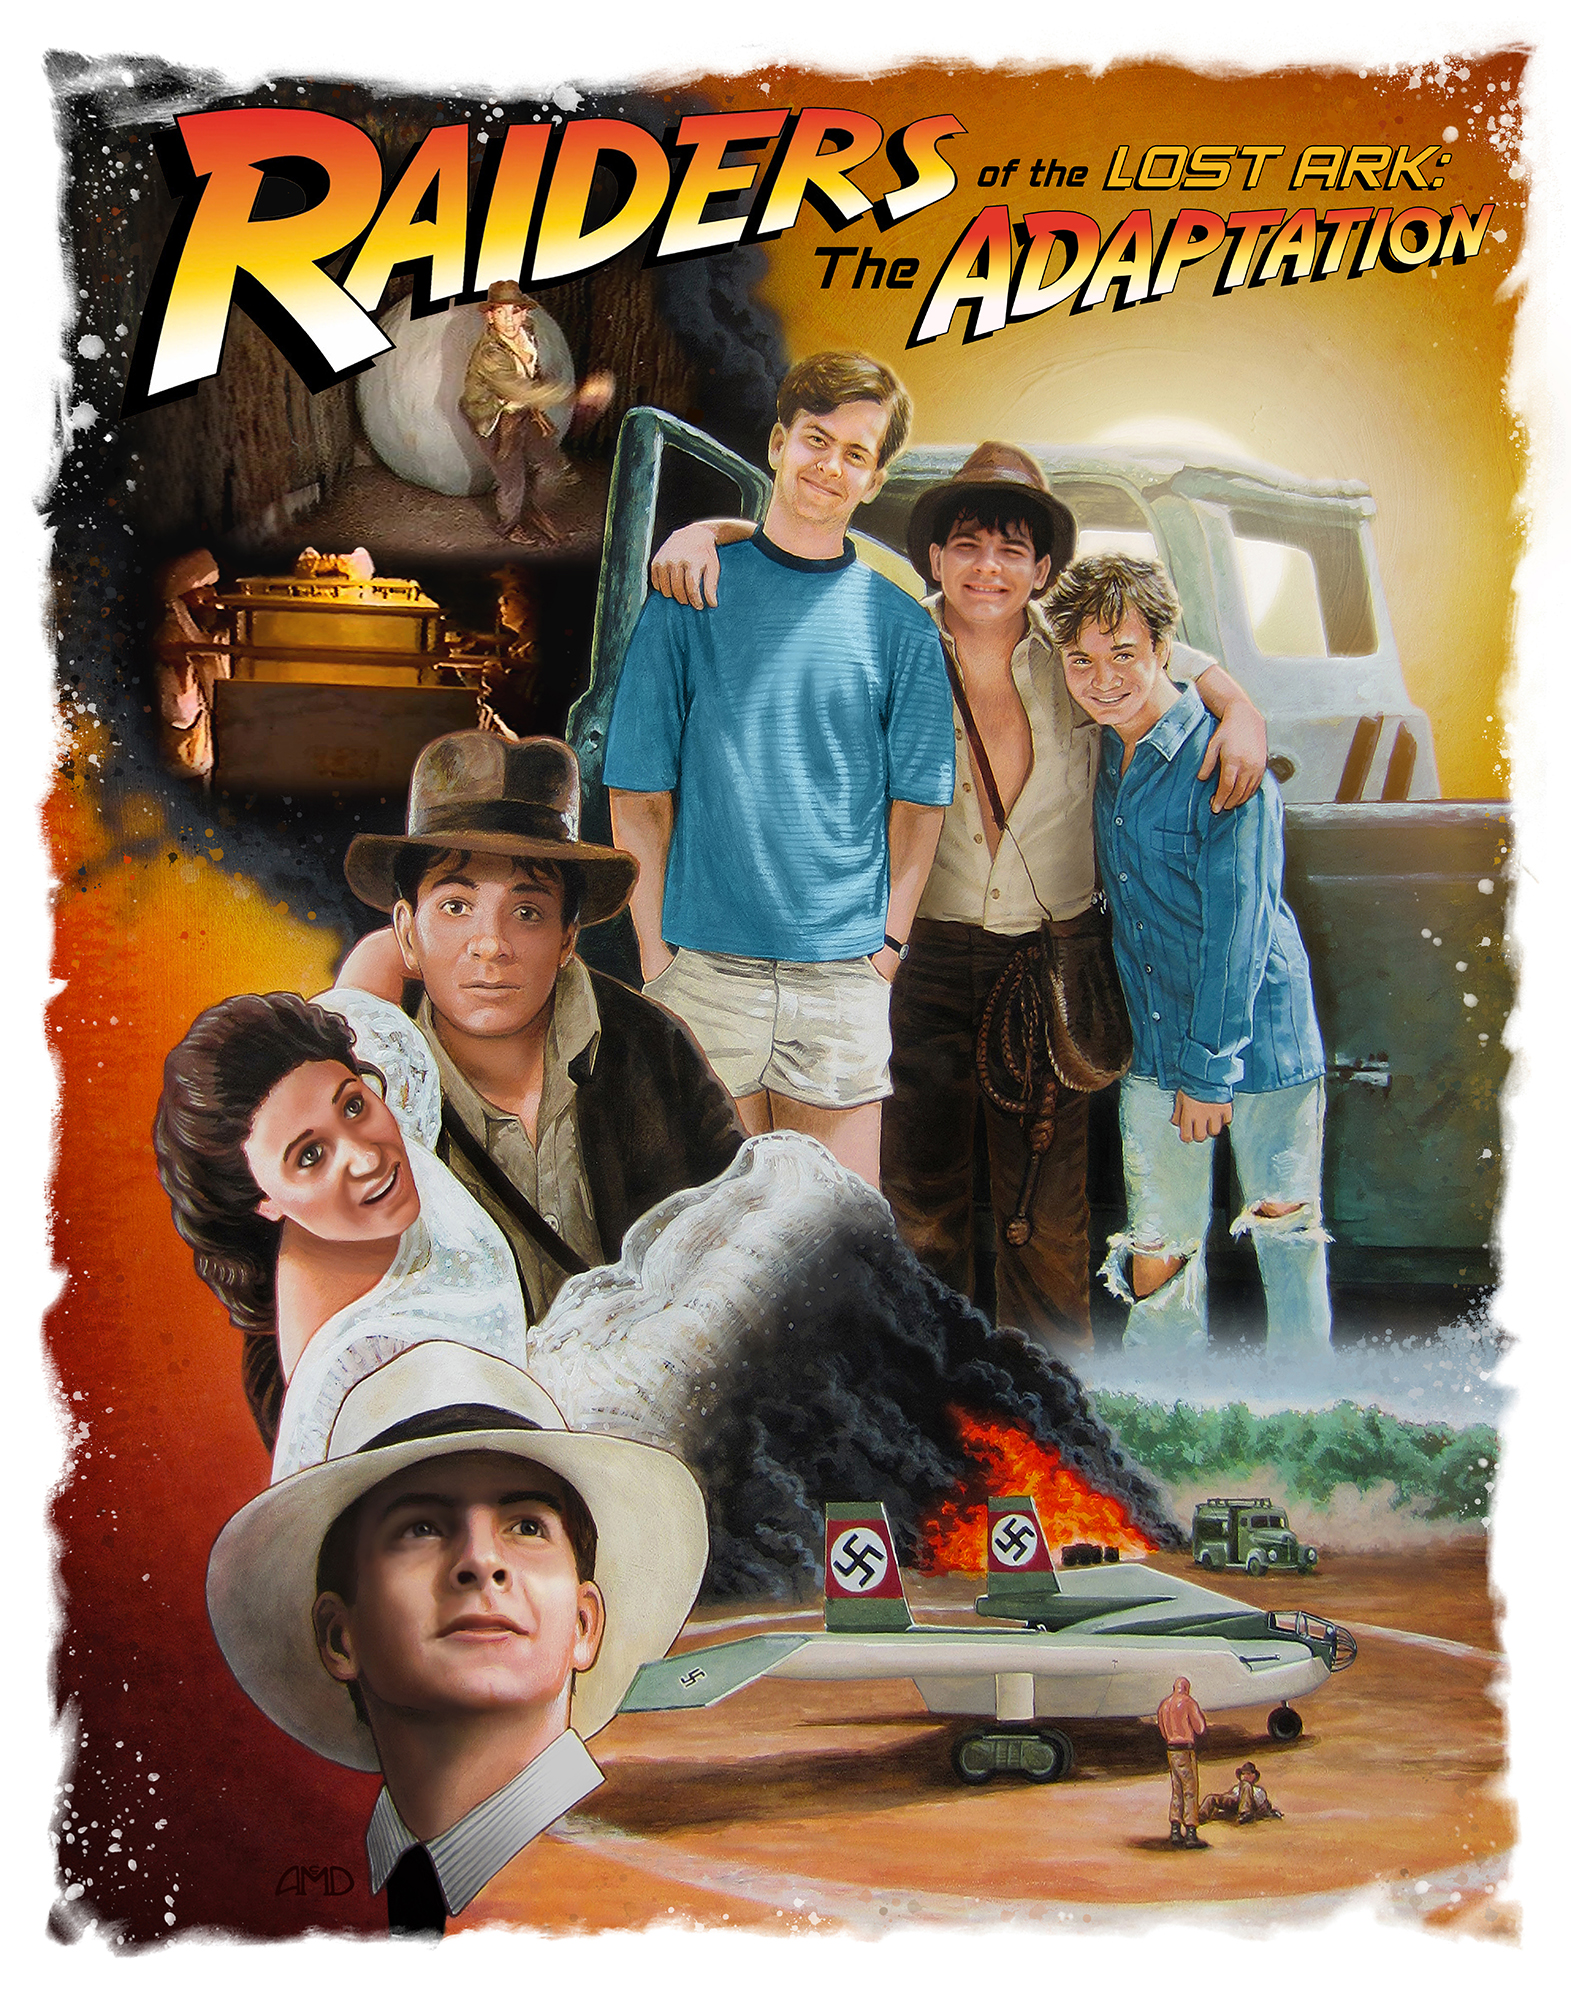 Raiders of the Lost Ark: Adaptation